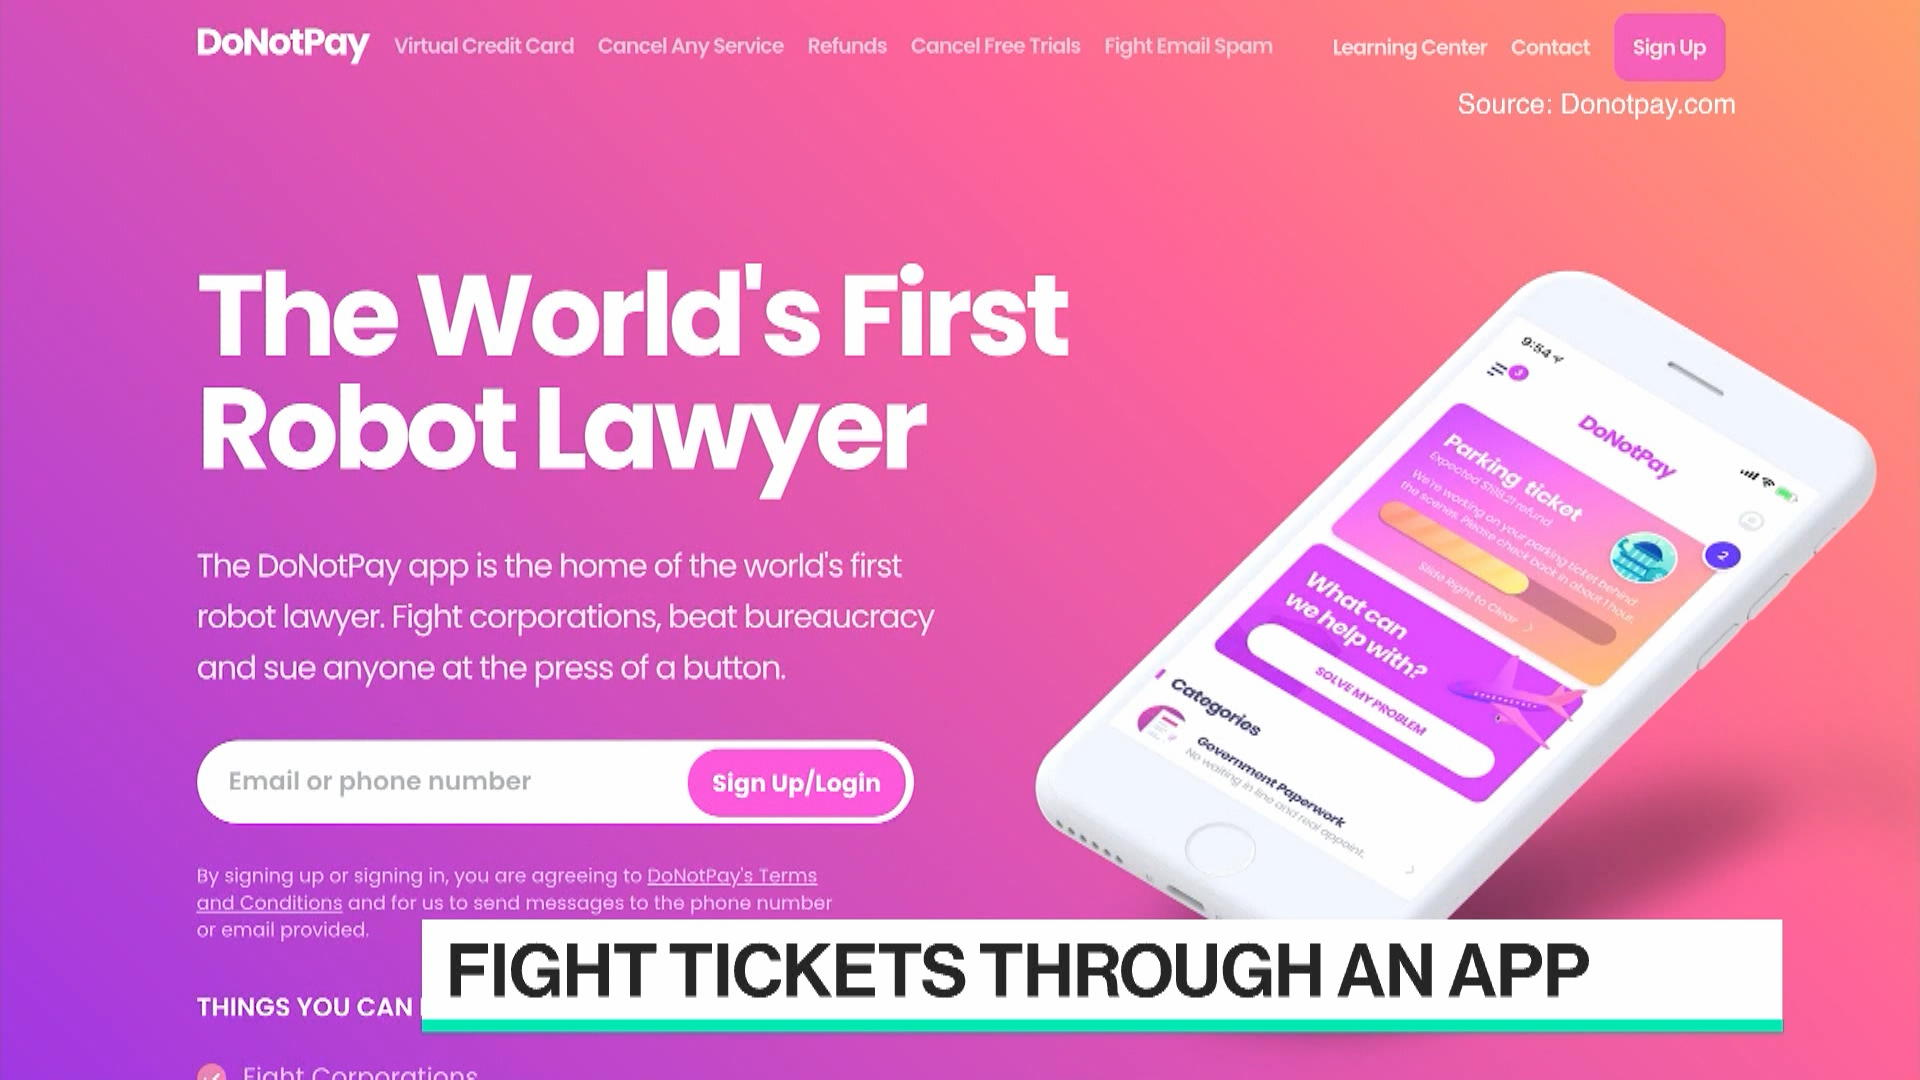 DoNotPay.com CEO Browder on World's First Robot Lawyer